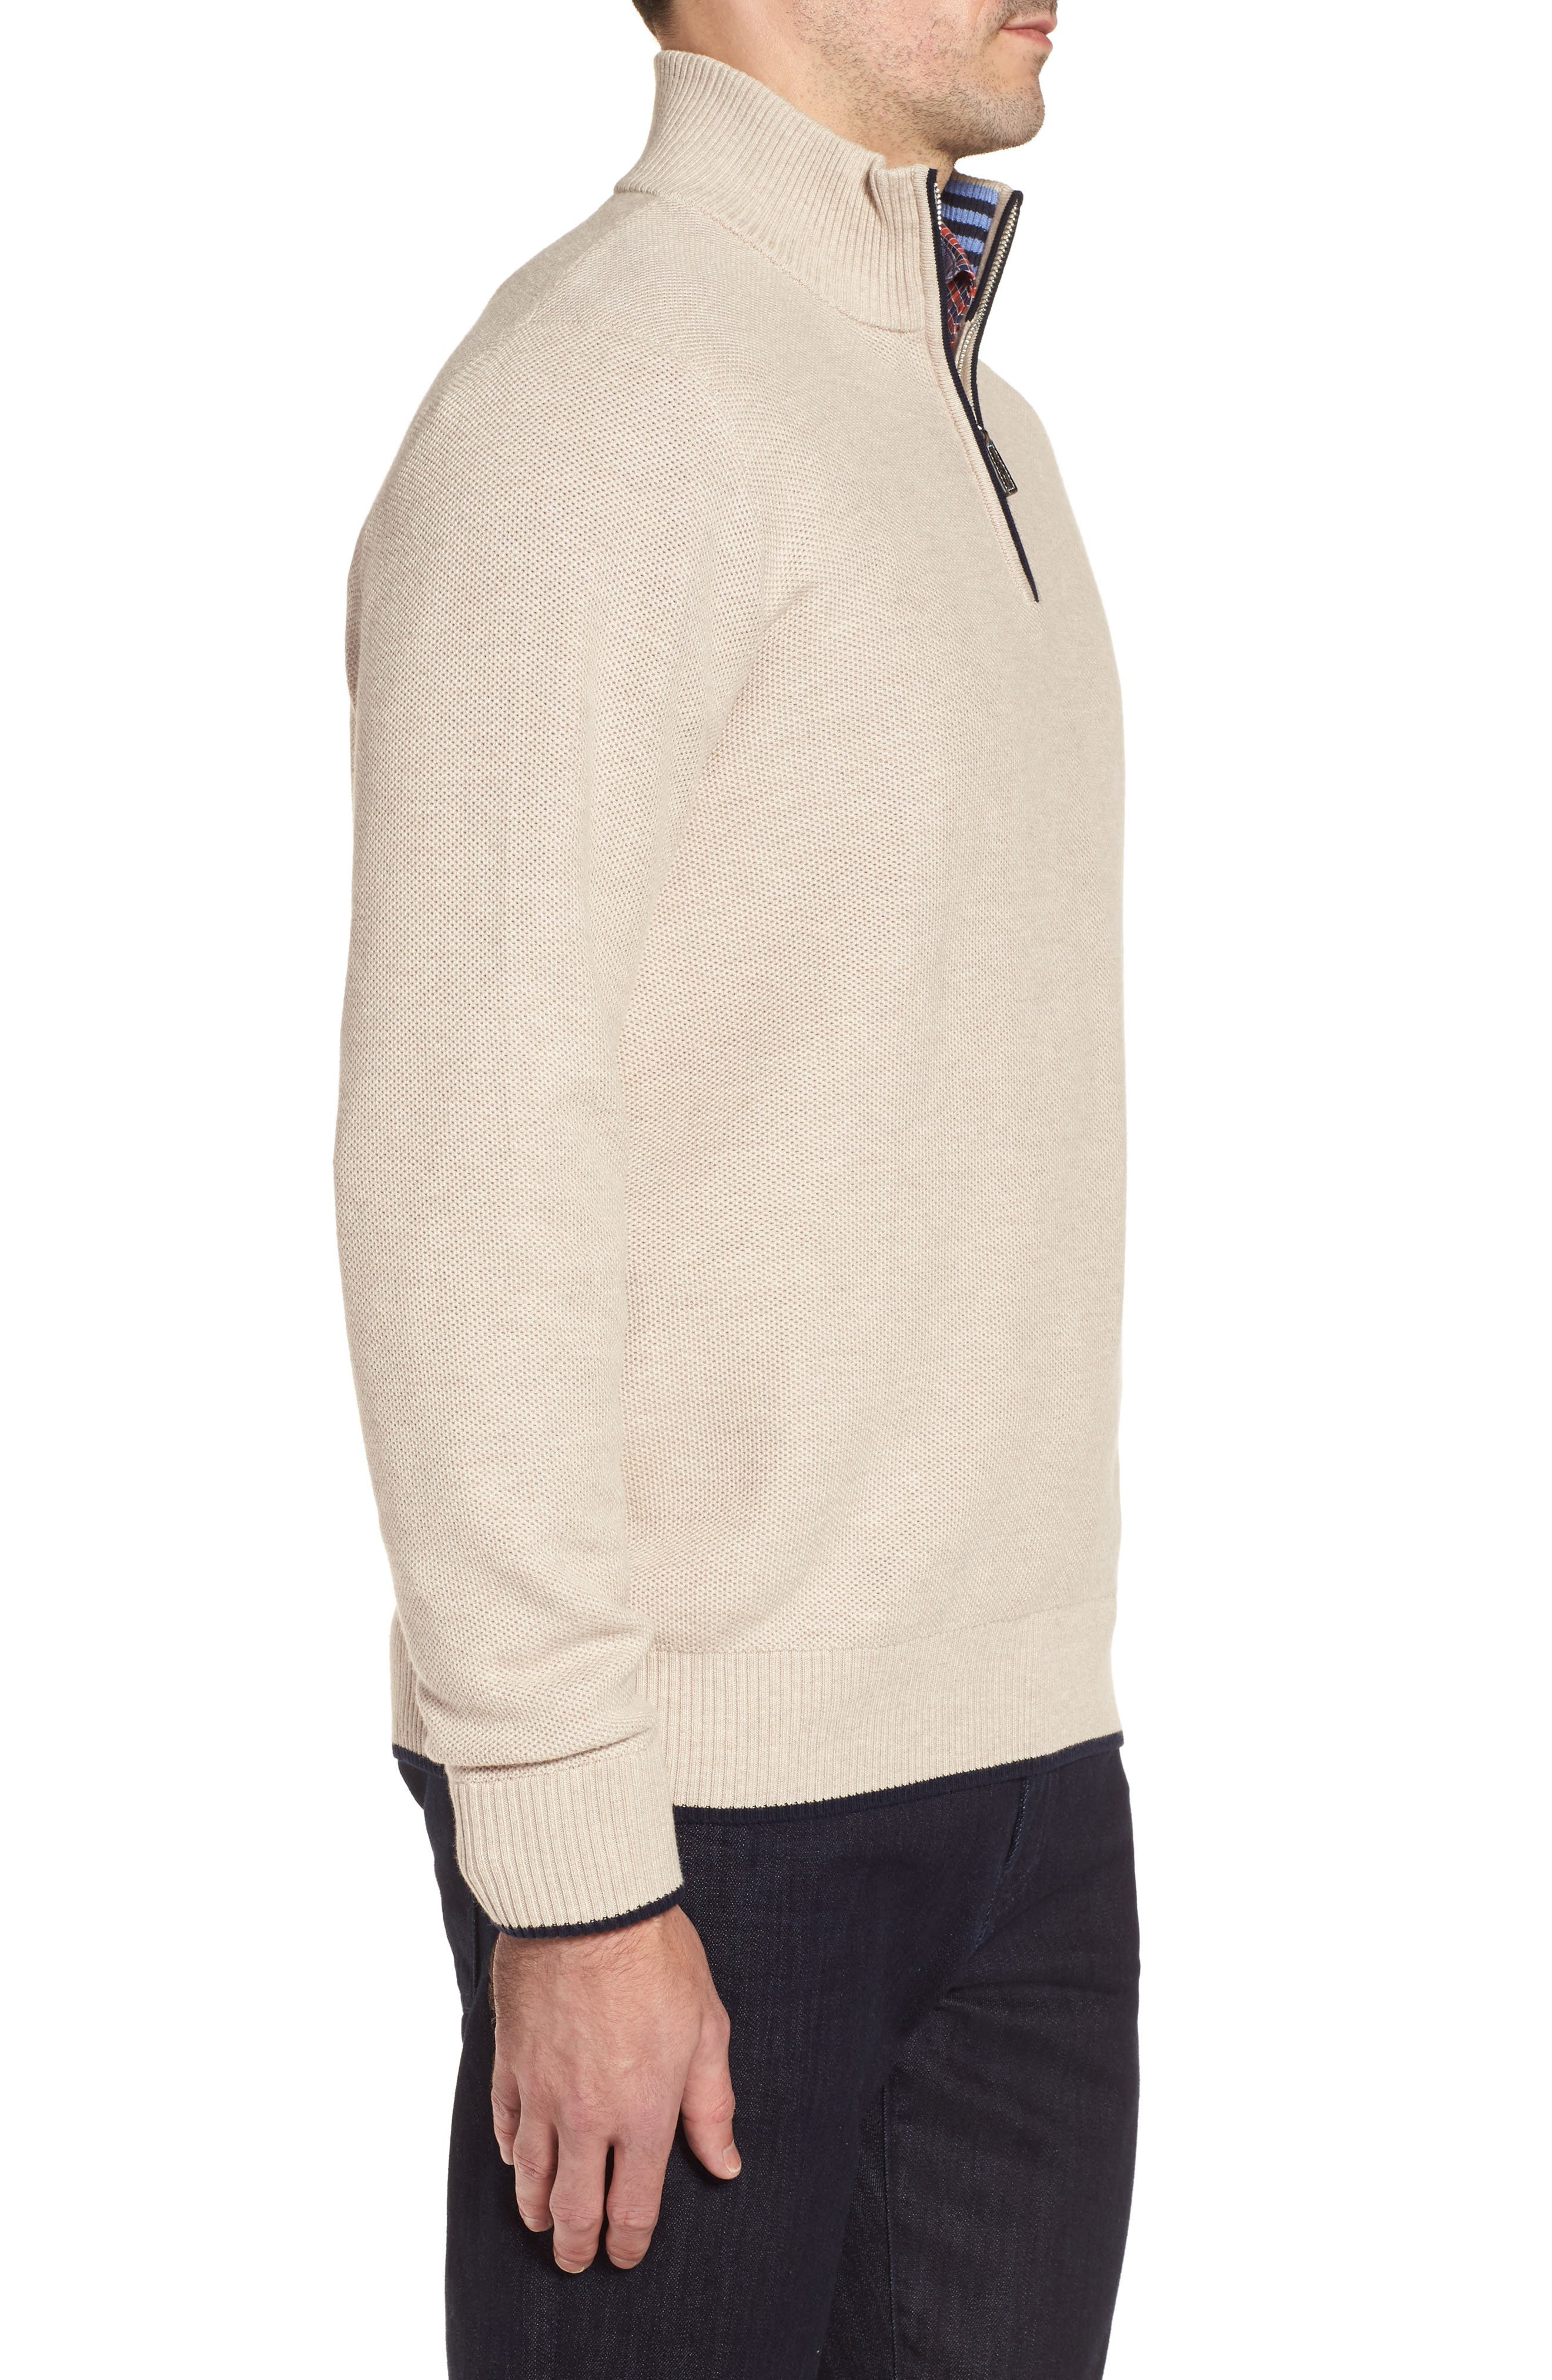 Alternate Image 3  - TailorByrd Sikes Tipped Quarter Zip Sweater